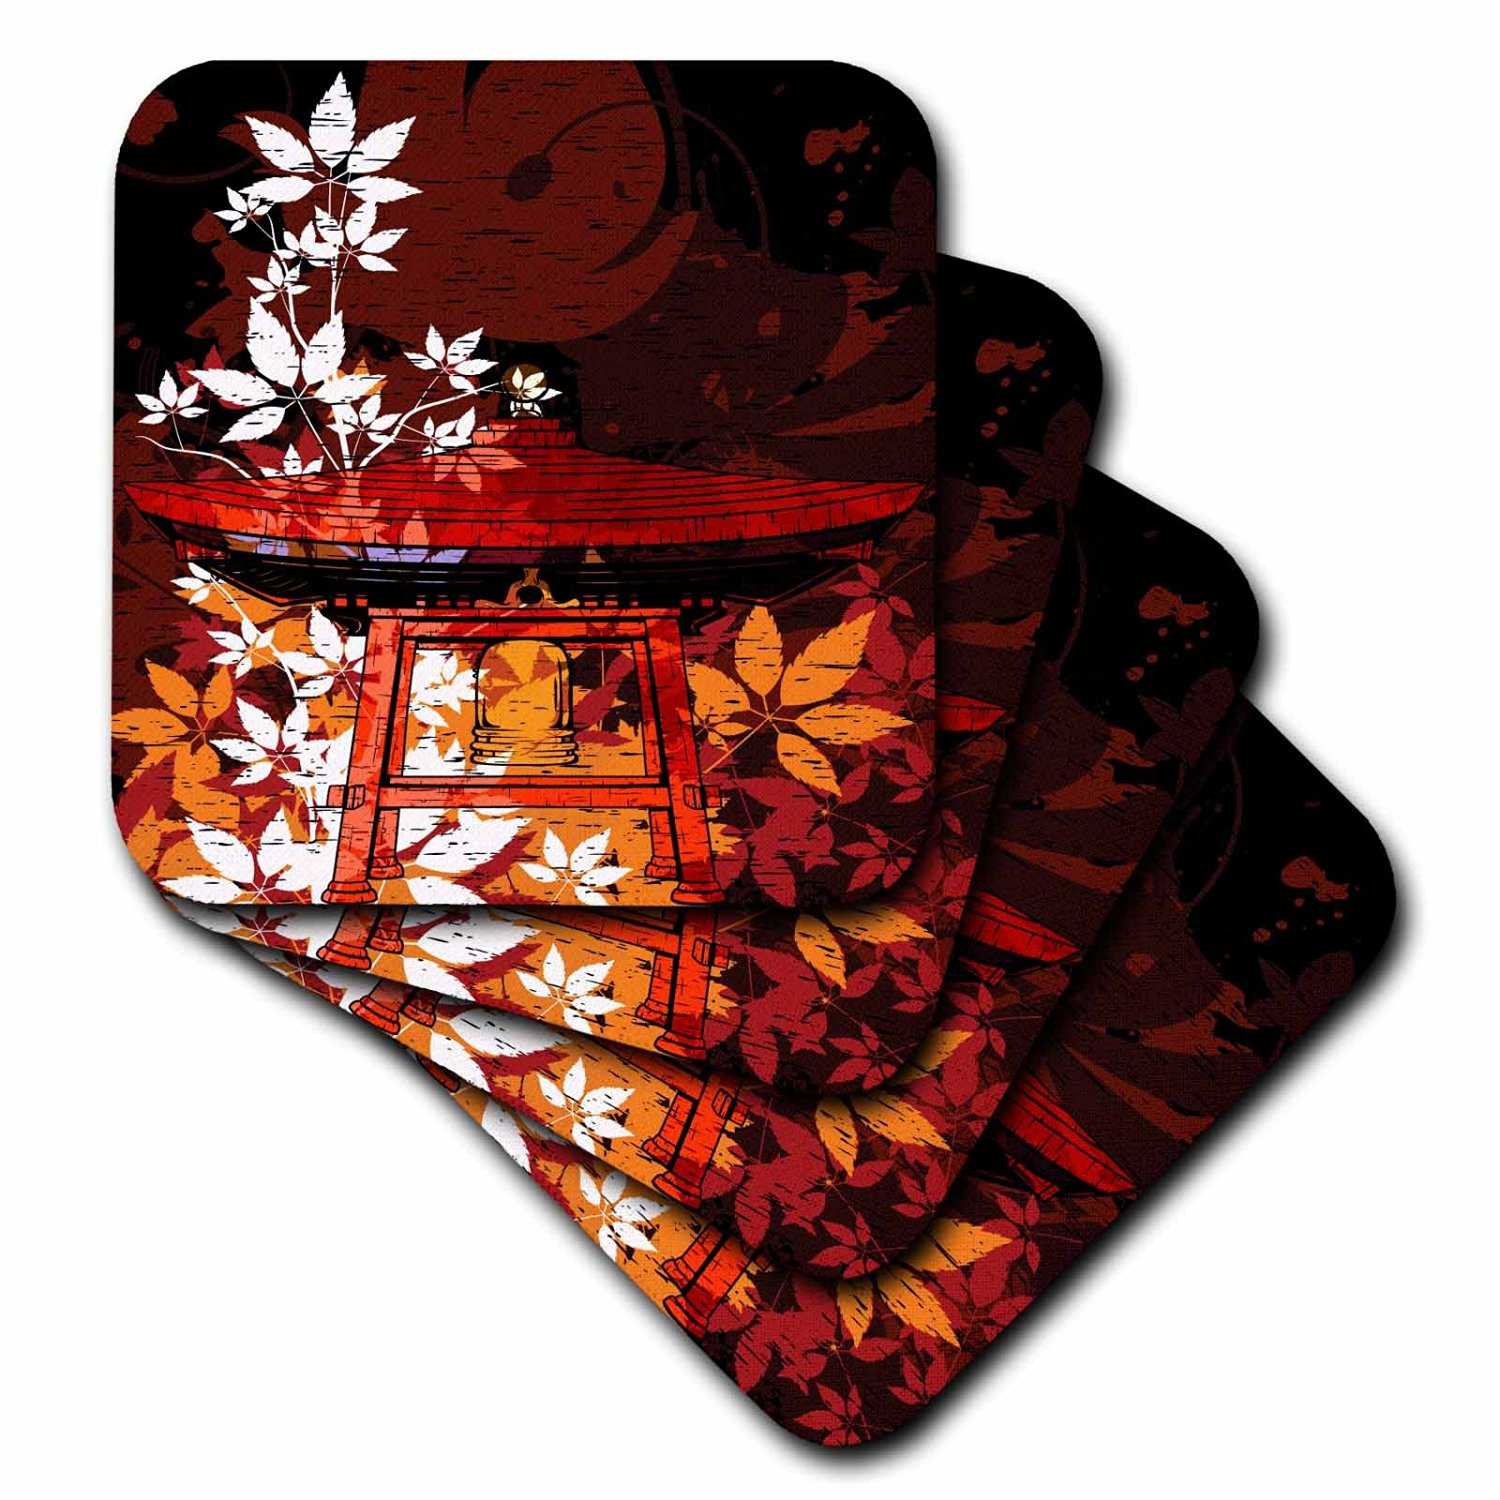 3dRose cst_116381_1 Pretty Ornate Japanese Bell Gong Decorated with Foliage Asian Oriental Art Soft Coasters, Set of 4